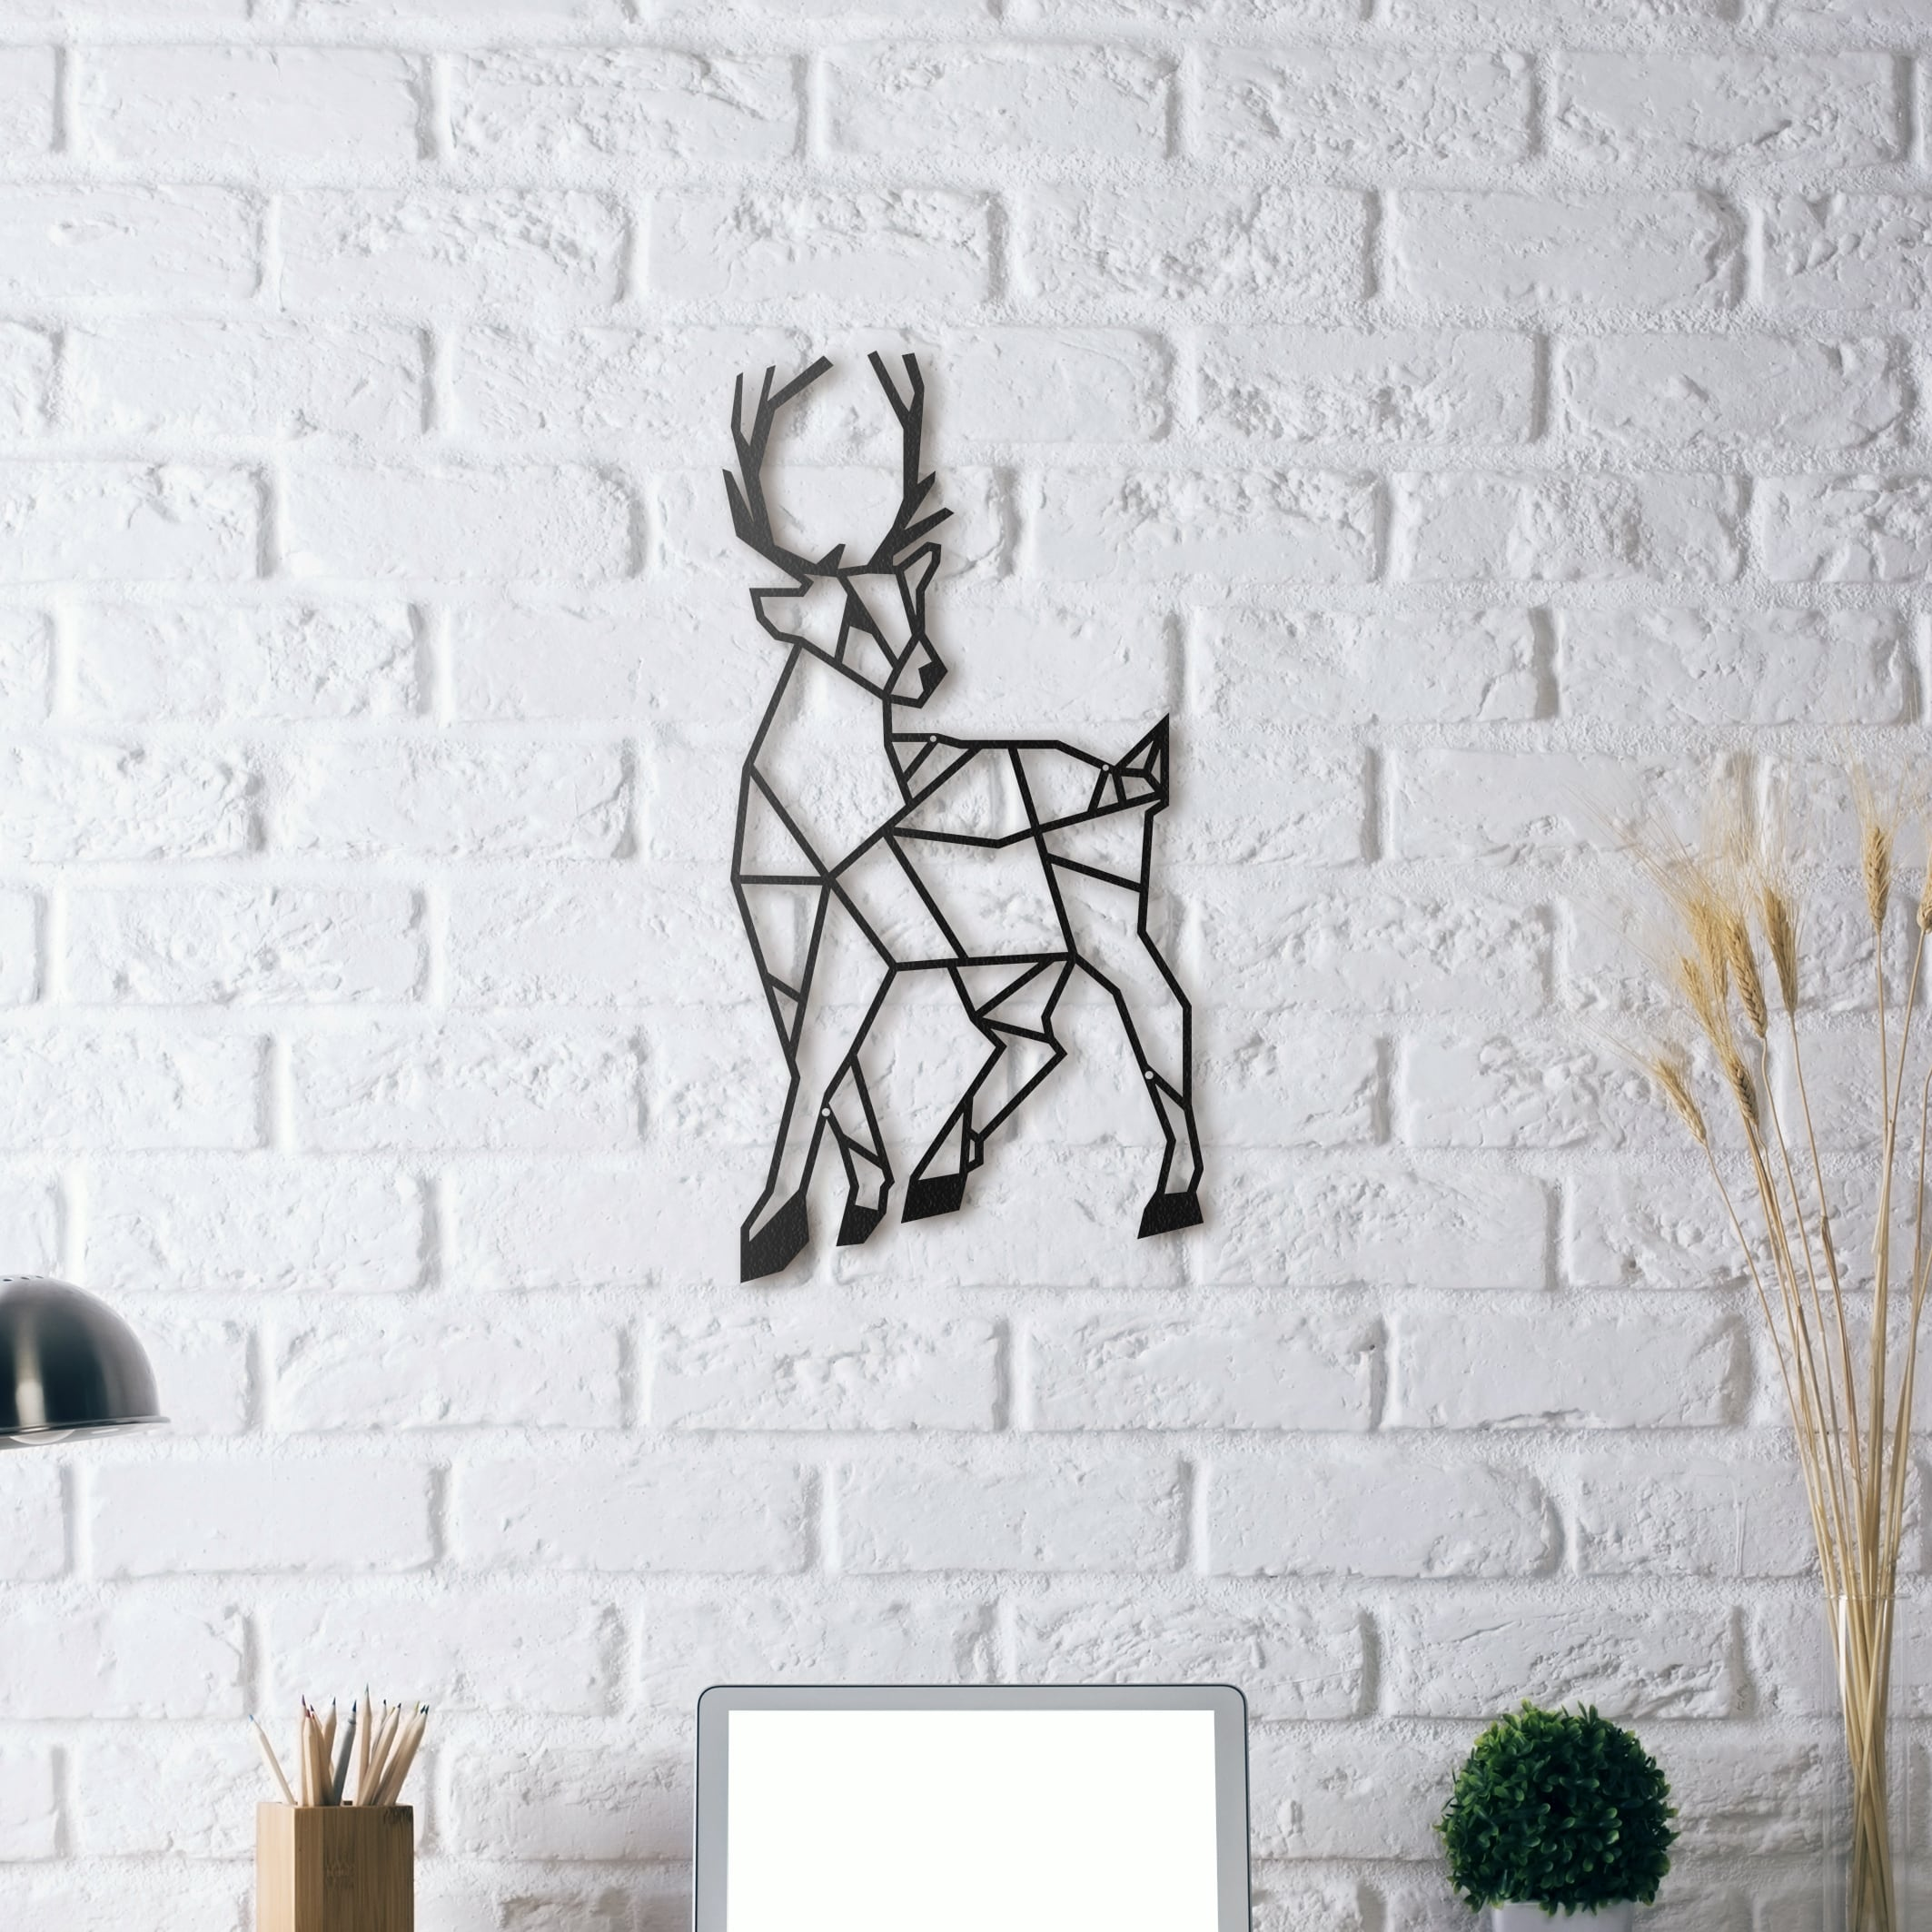 Deer metal wall decoration for a nature interior